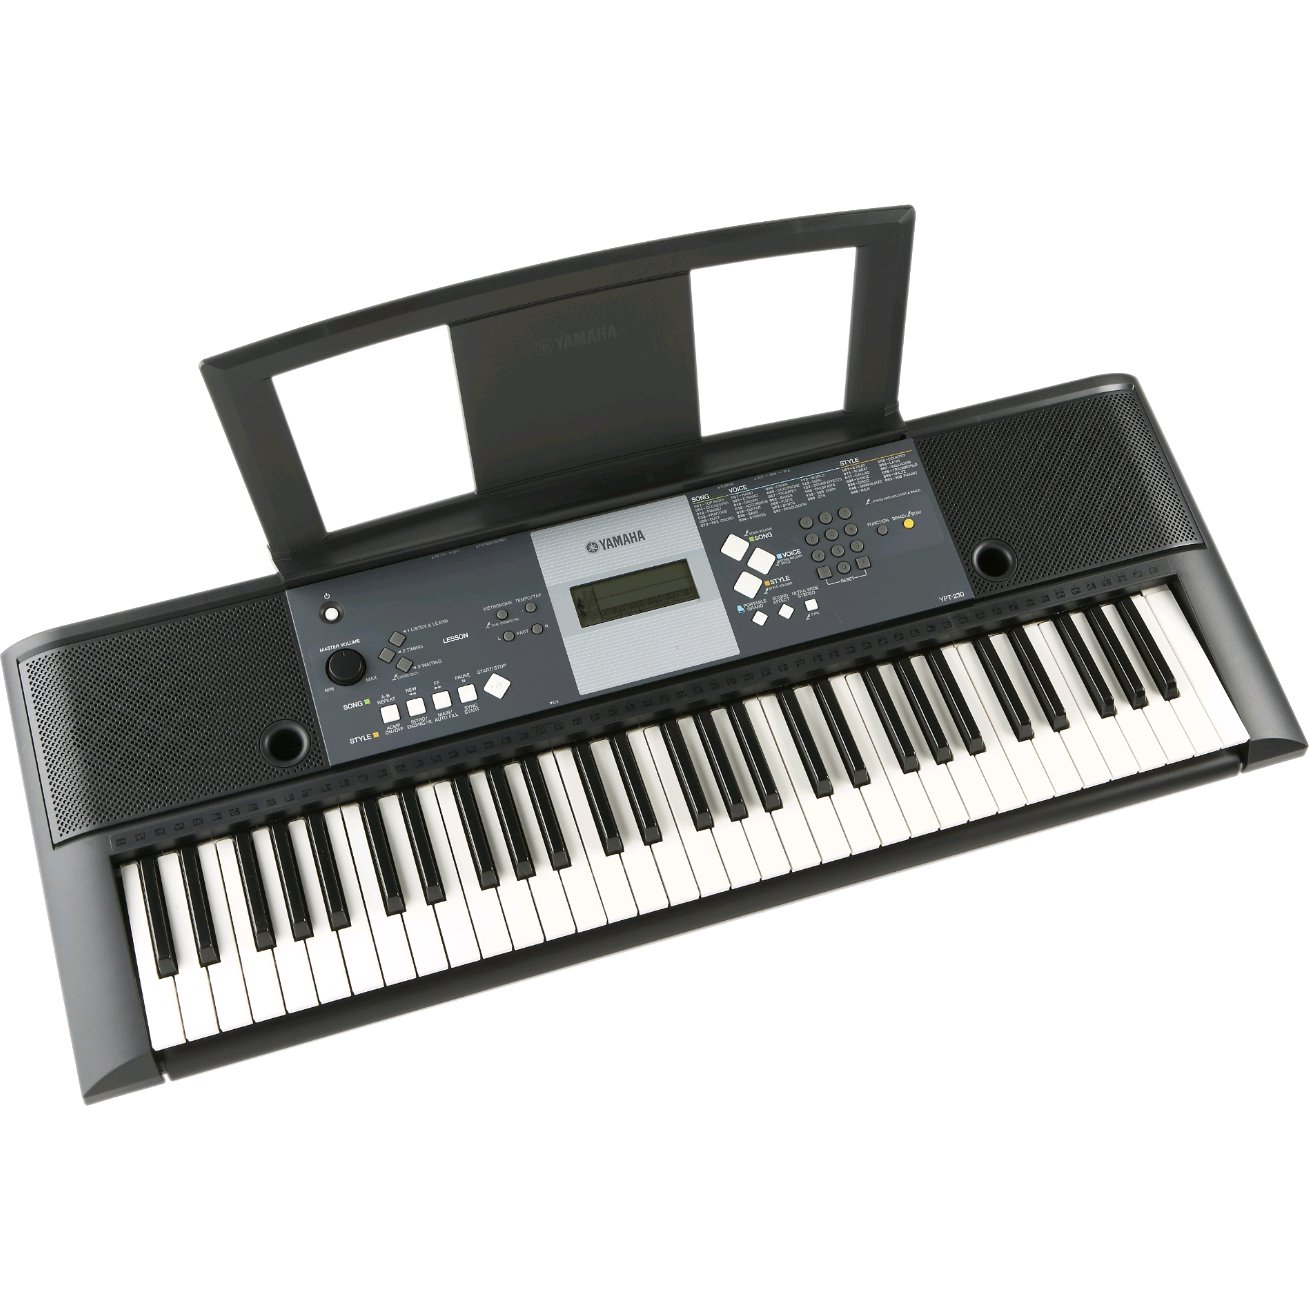 Yamaha ypt 230 keyboard kaufen bax shop for Yamaha professional keyboard price